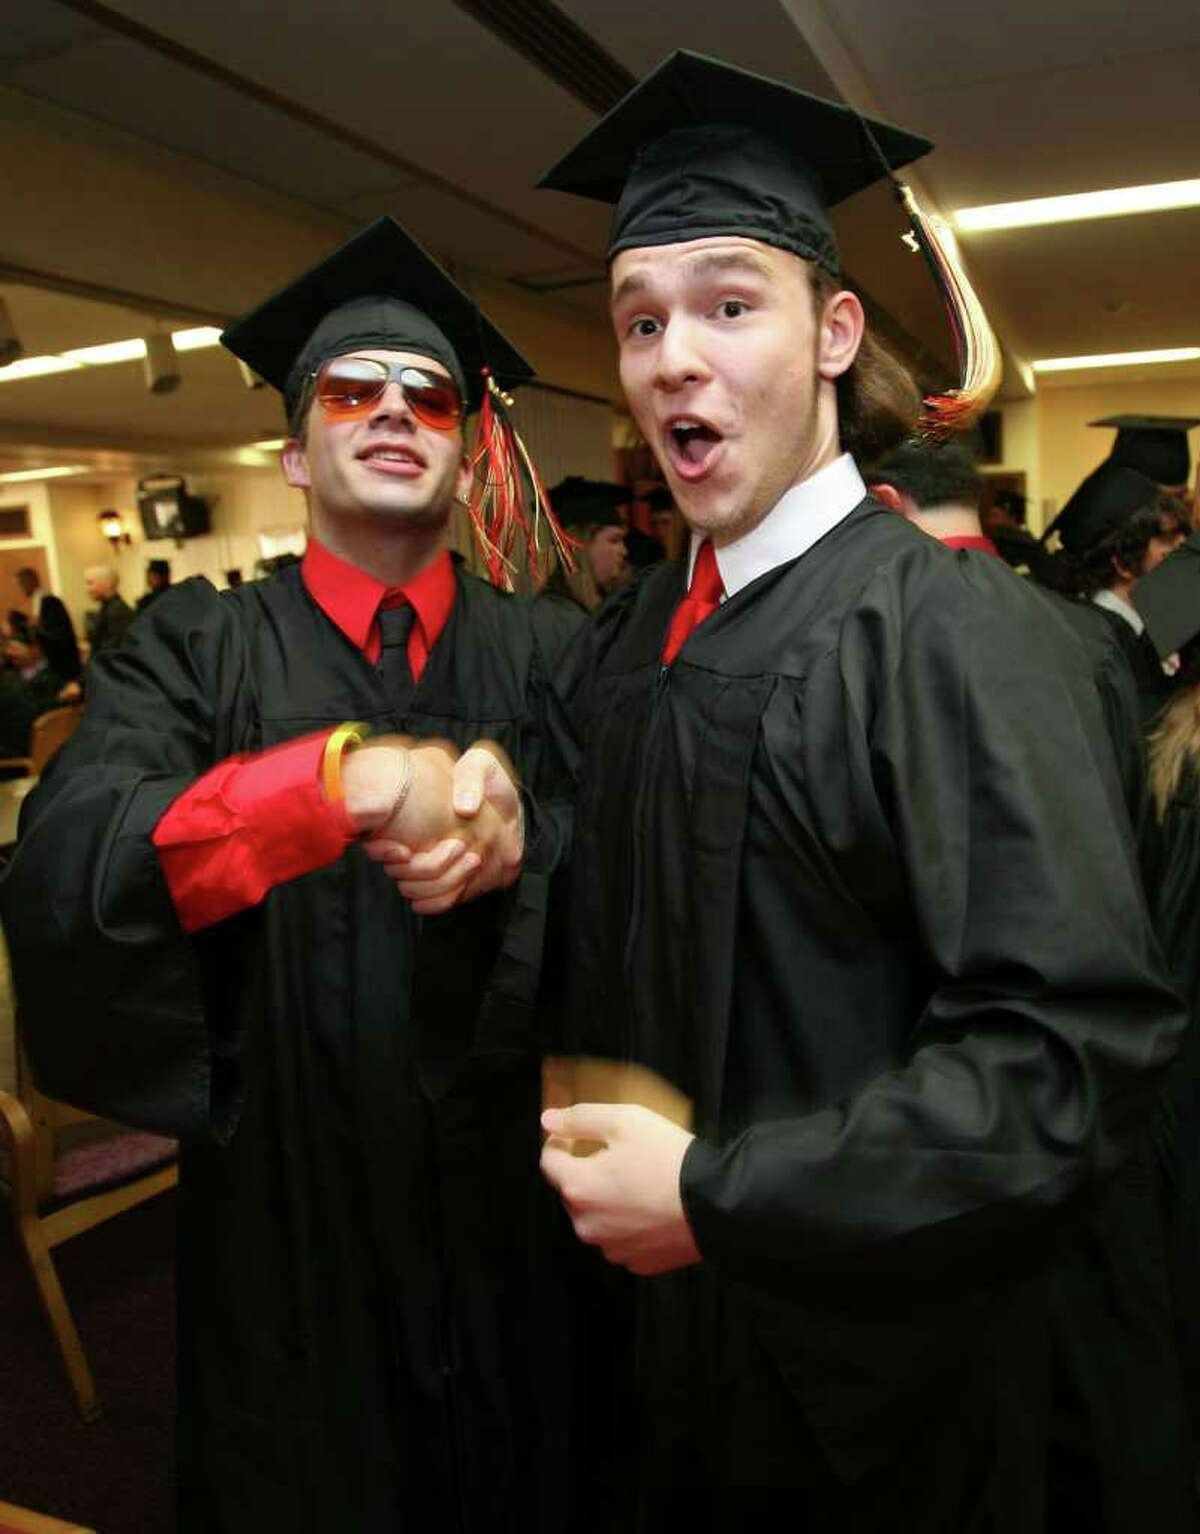 Platt Tech graduation in Milford on Monday, June 20, 2011. Kyle Powers, left of West Haven, and Dennis Pellagrino of Milford.